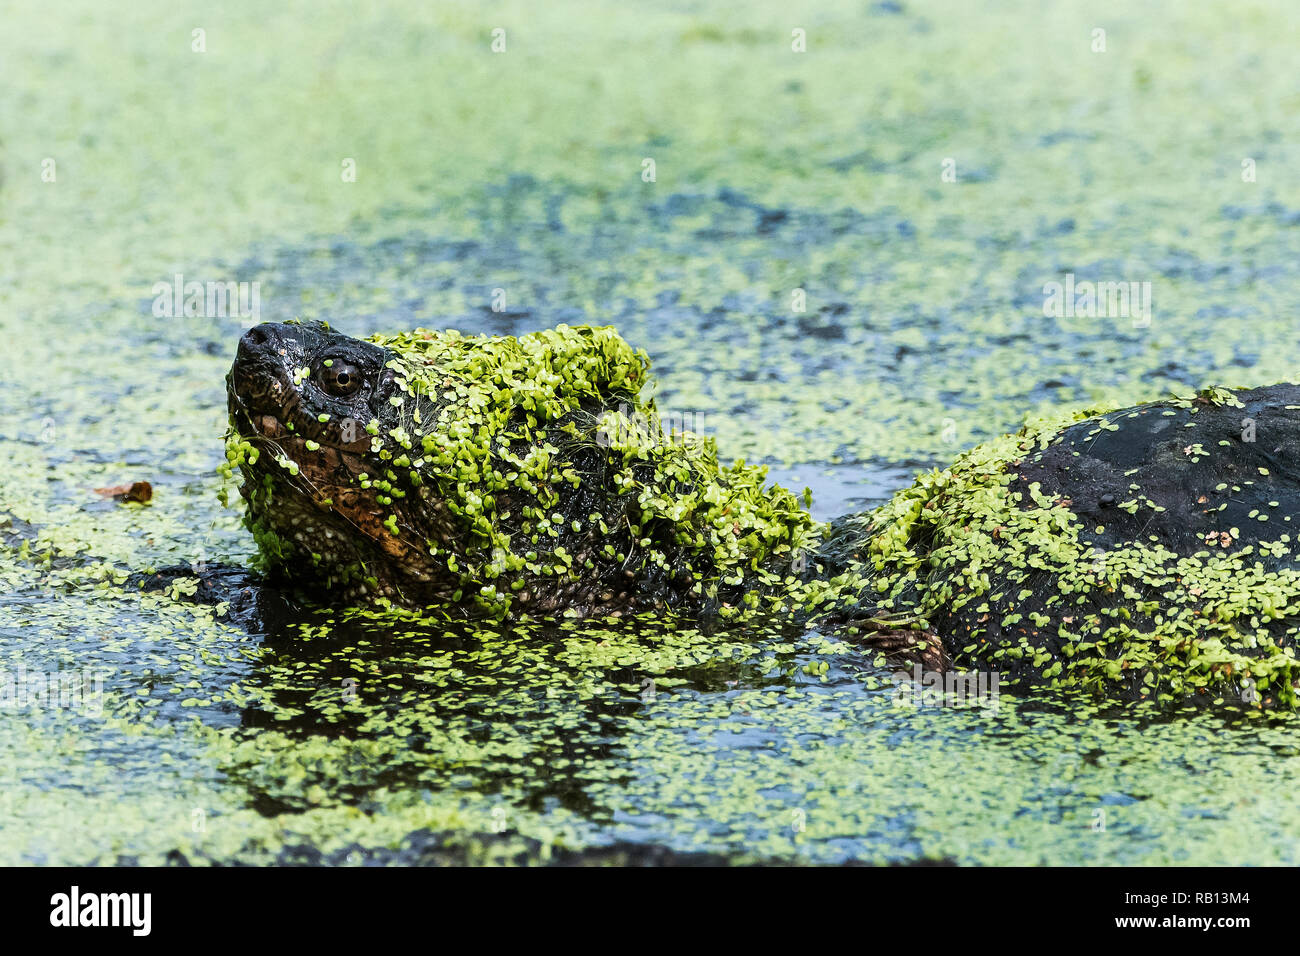 Snapping turtle covered with duck weed close-up swimming in pond Stock Photo